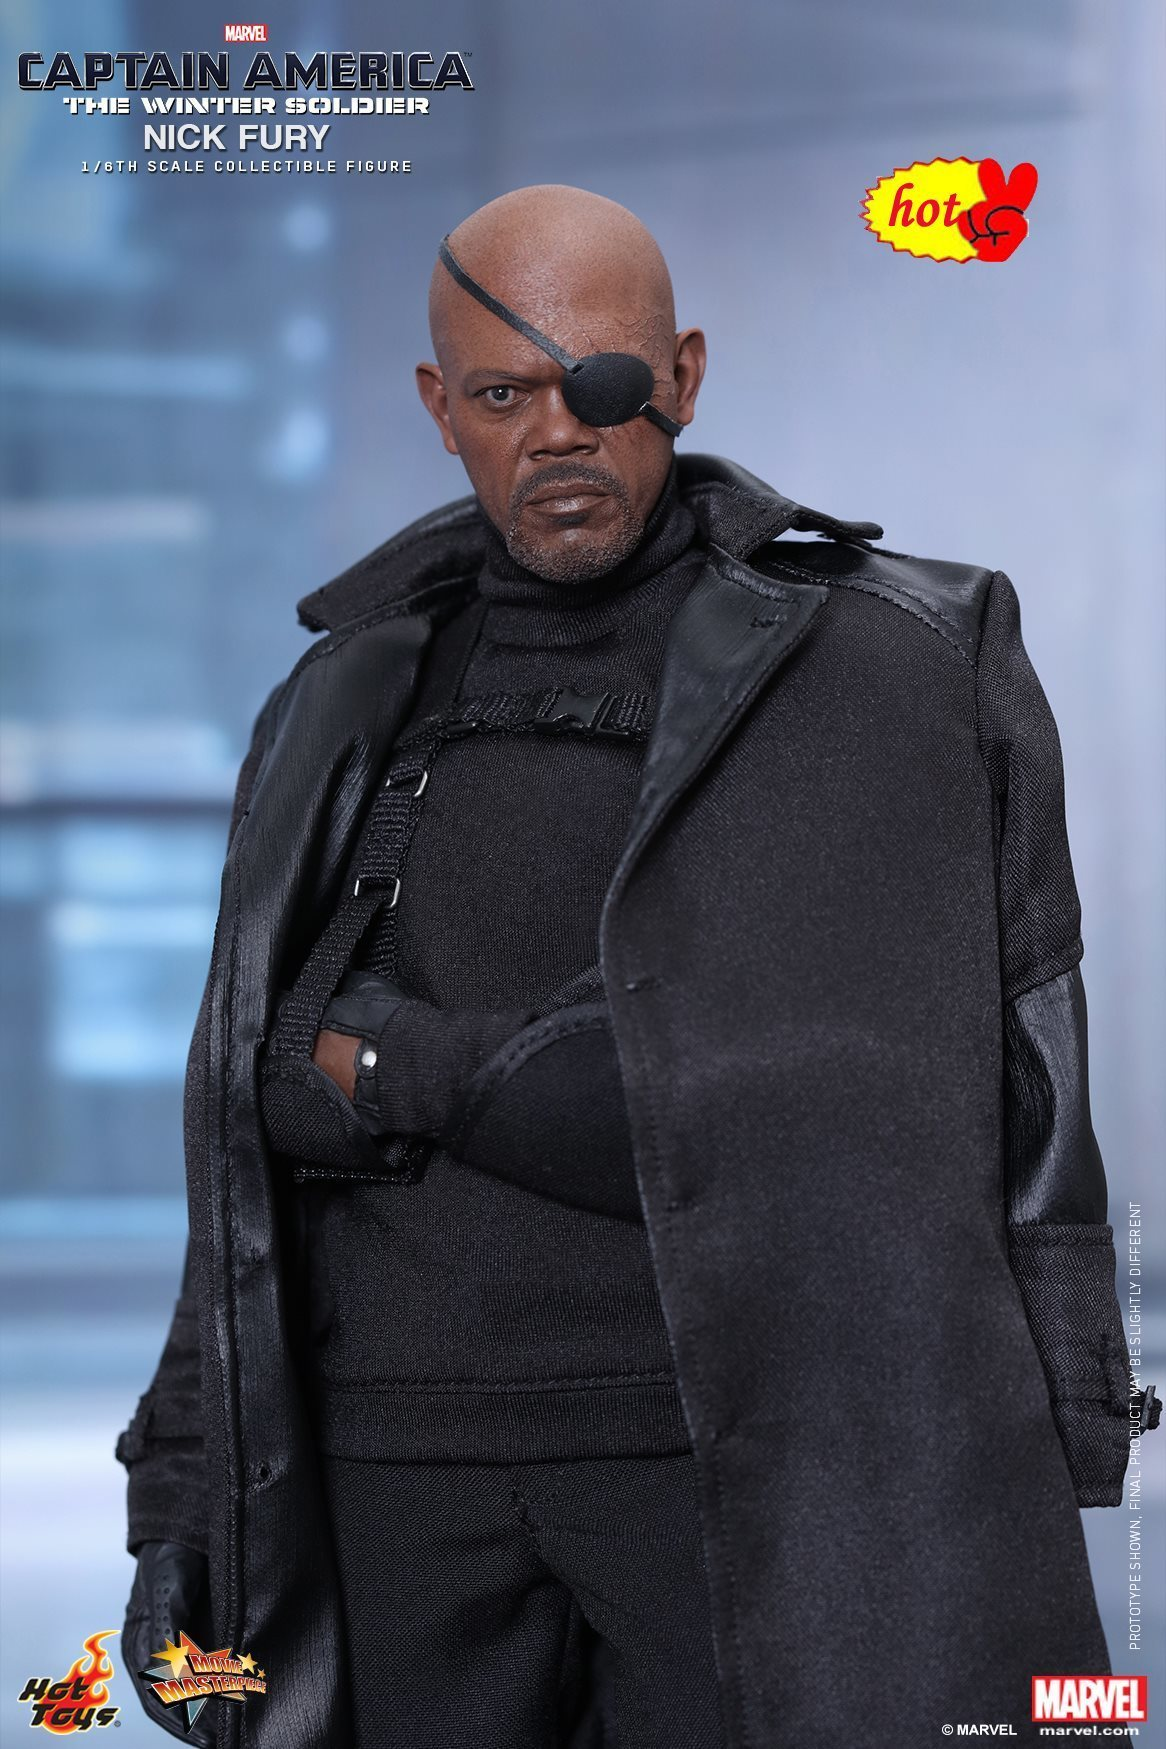 HT Hottoys Hot Toys MMS315 The Winter Soldier 1/6th Scale Nick Fury Collectible Figure Specifica Action Figure Nuovo Box военные игрушки для детей hot toys wt hottoys ht 1 6